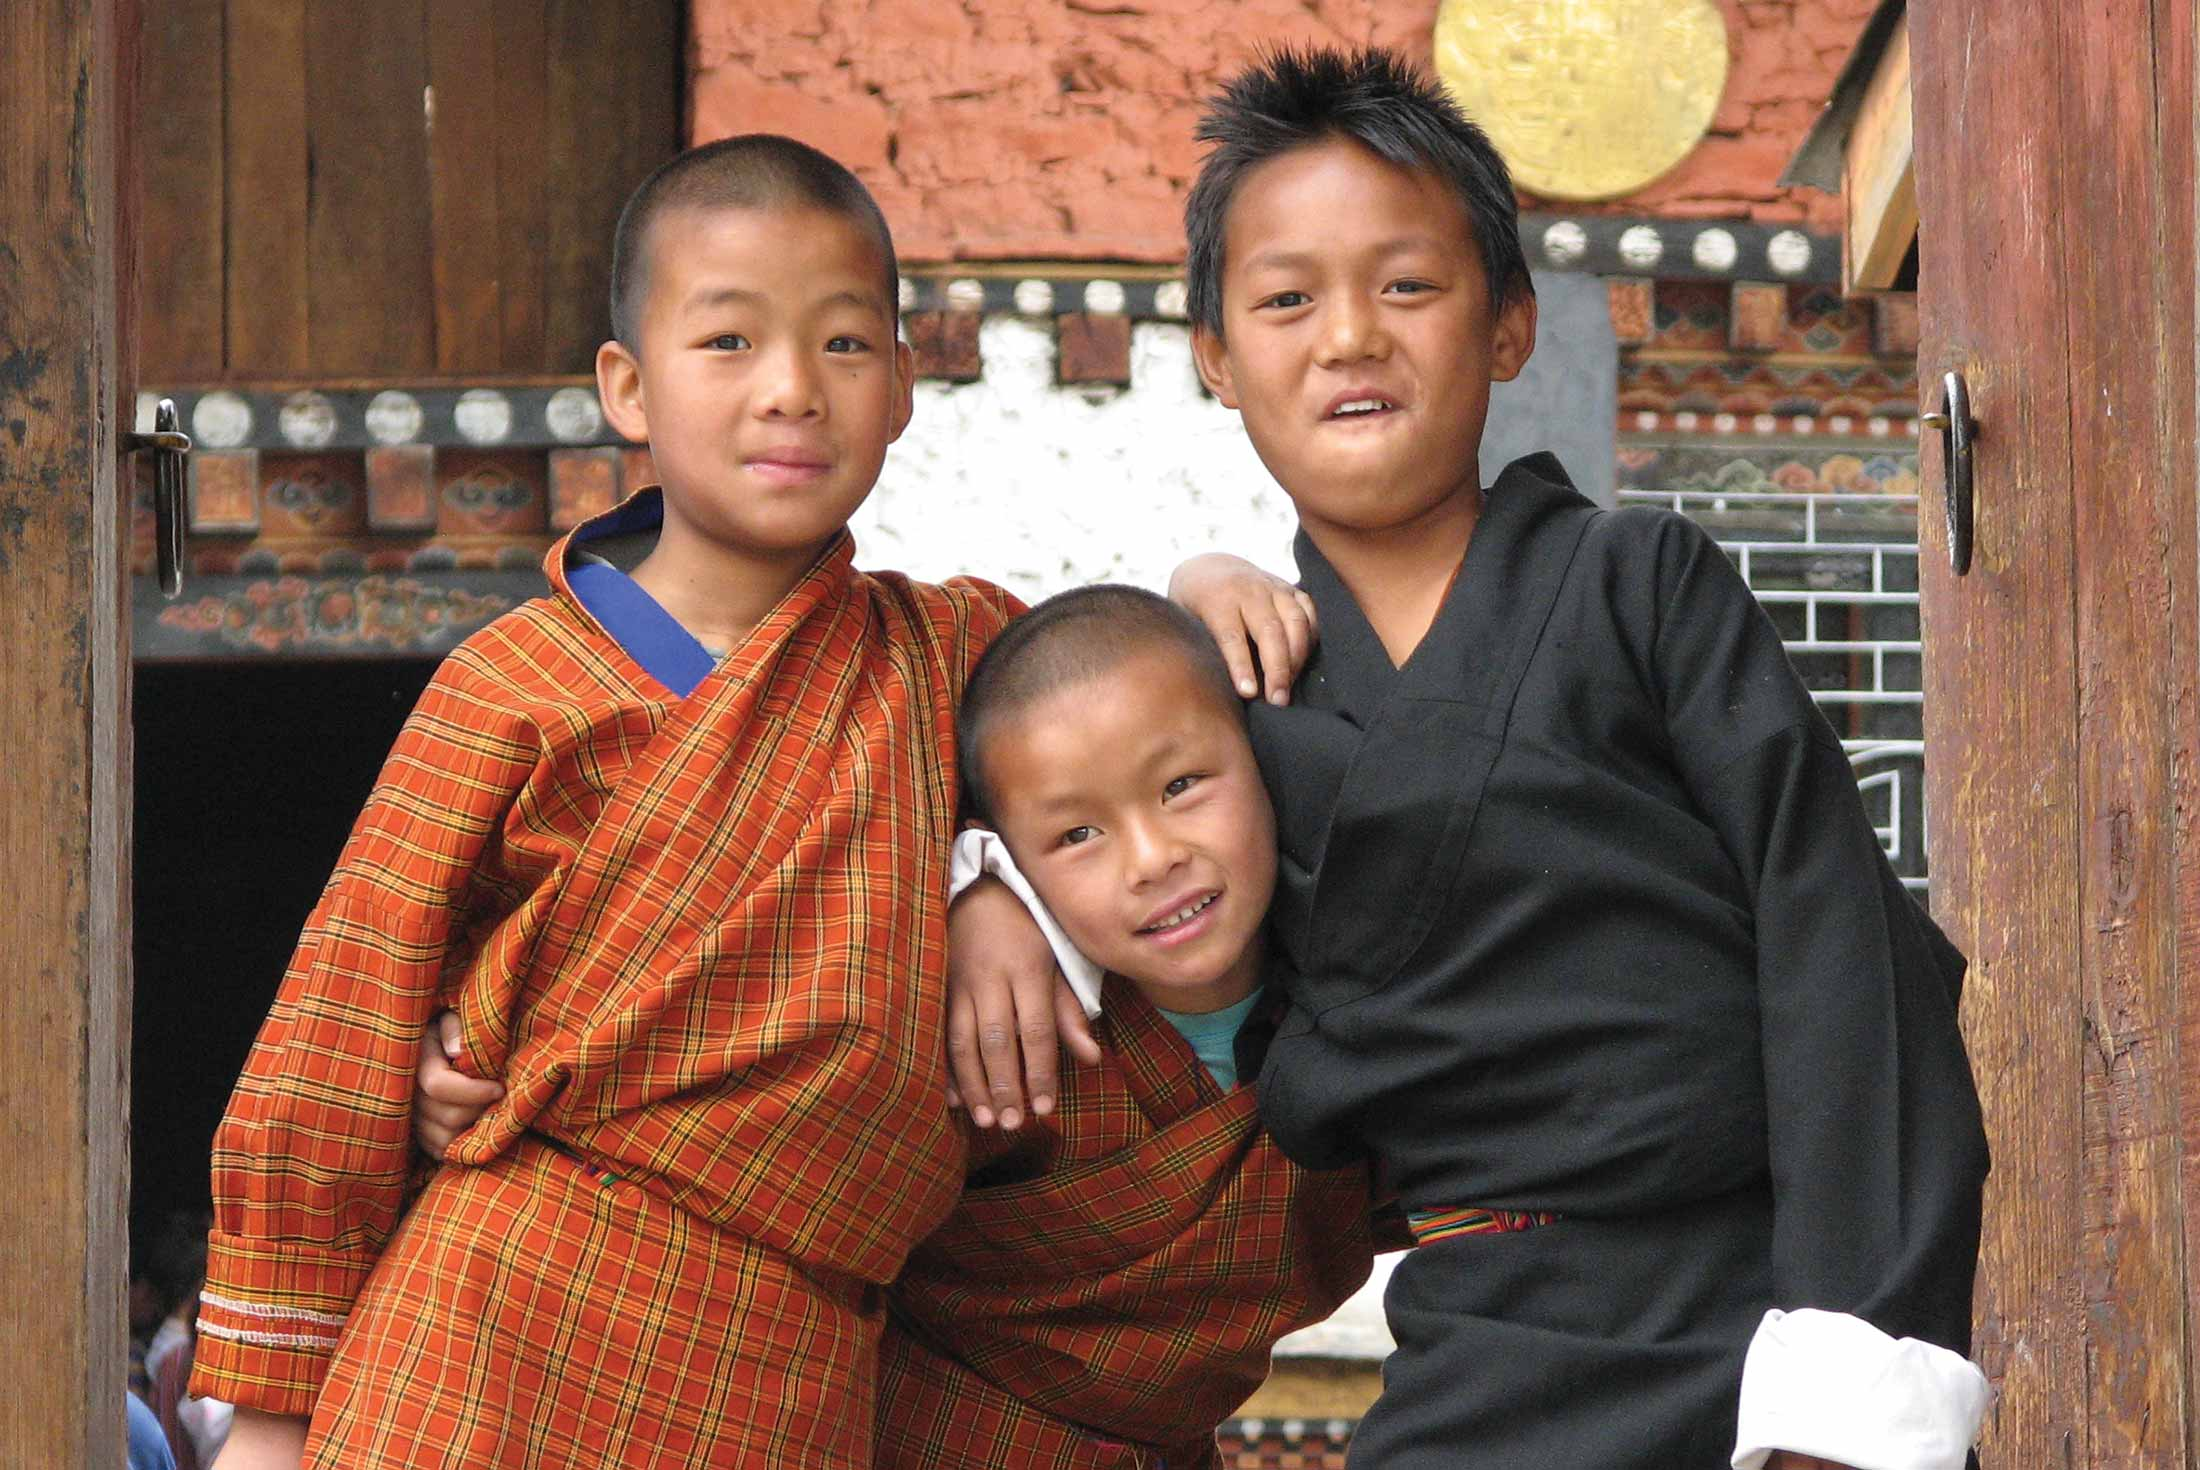 Bhutan: Dragon Kingdom 3